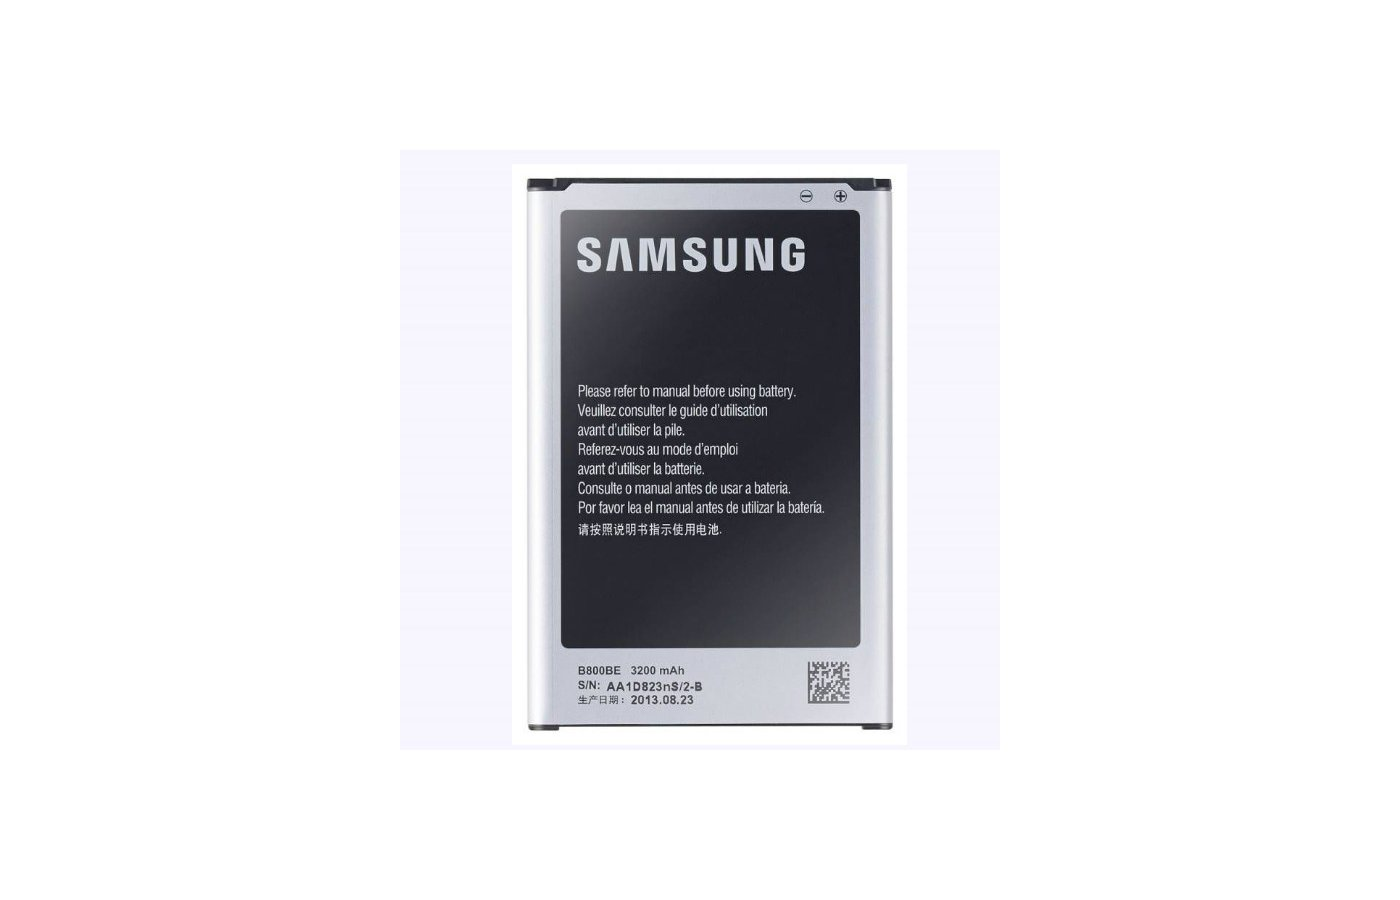 Аккумулятор Partner для Samsung B800BS/BE 3000mAh (ПР037524)